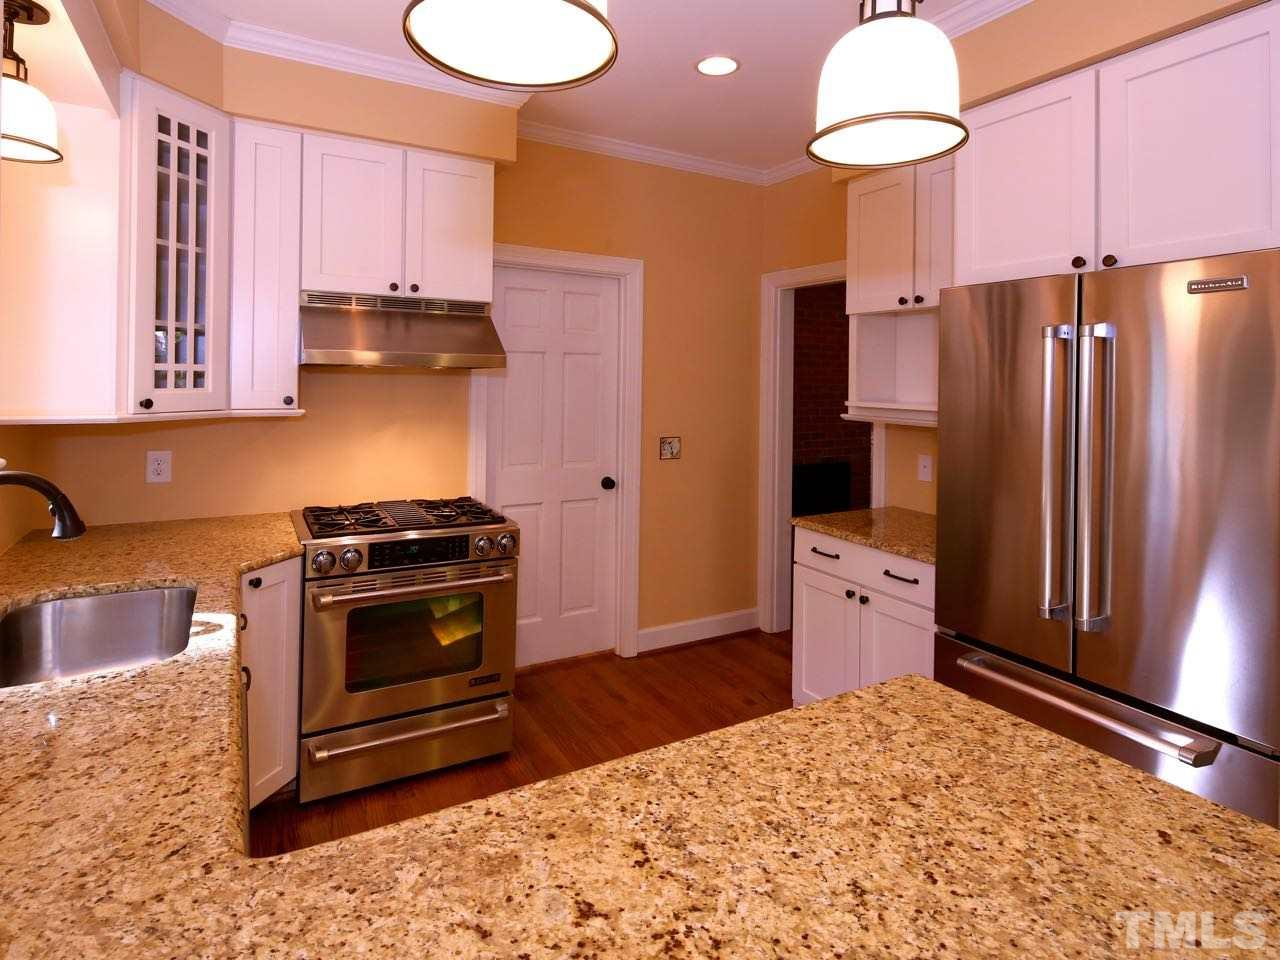 The kitchen is not large, but it is extremely functional. Everything you need is just three steps away. The counter tops are granite. And the custom-made pantry shelves are furniture quality.